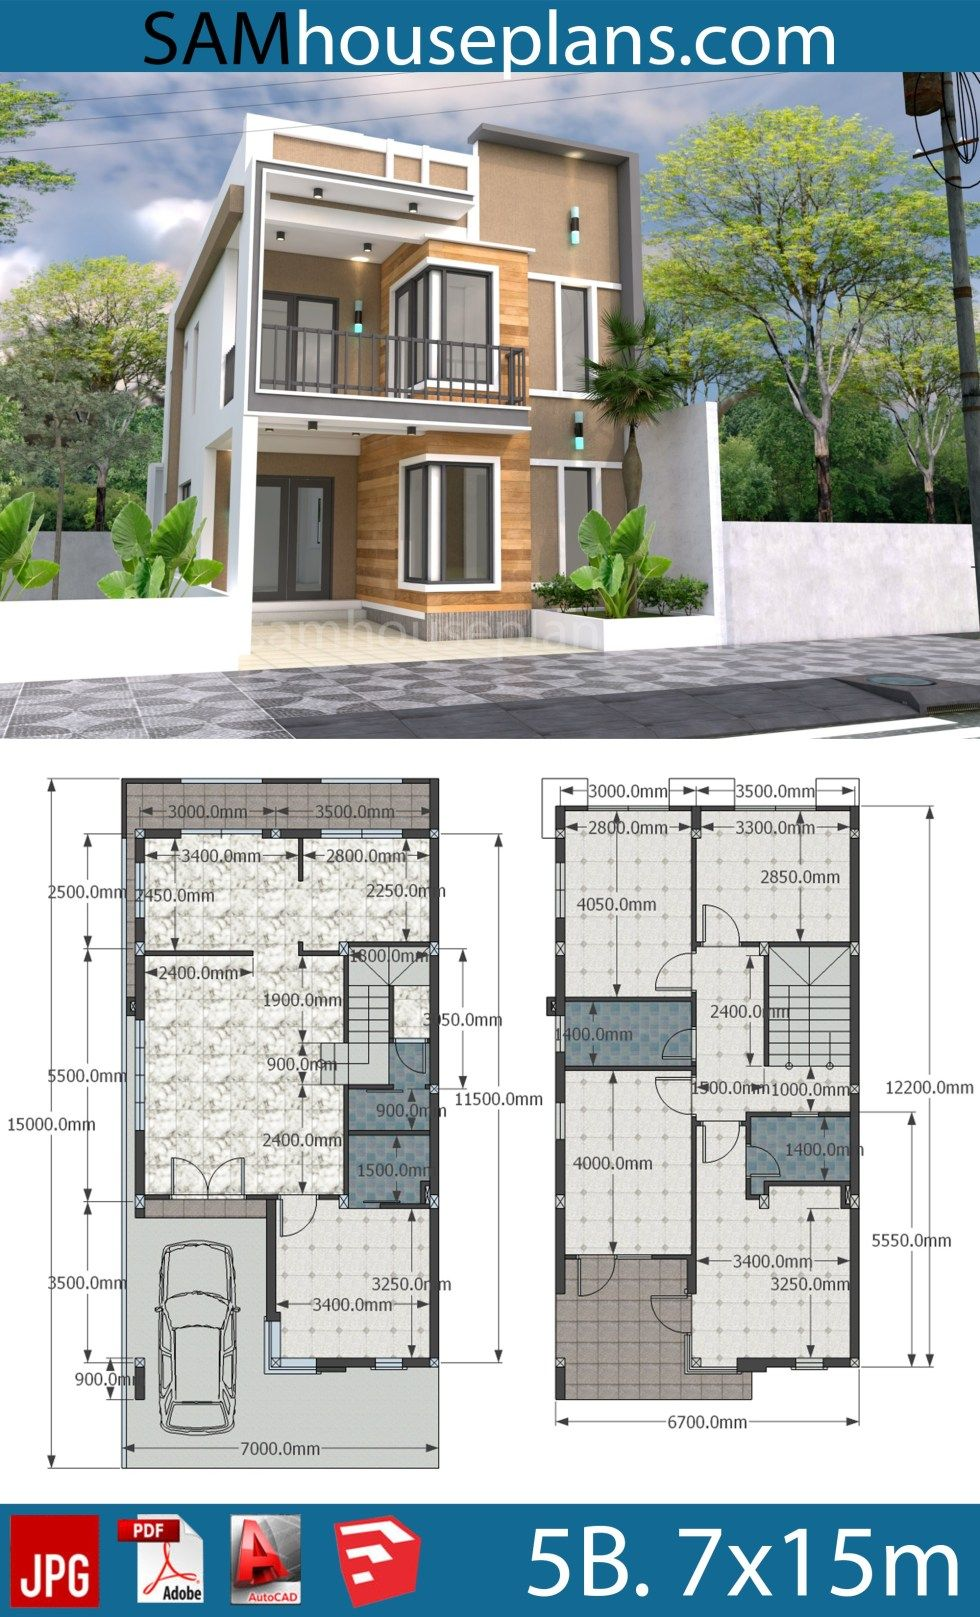 House Plans 7x15m With 4 Bedrooms Sam House Plans Model House Plan Modern Style House Plans Two Story House Design